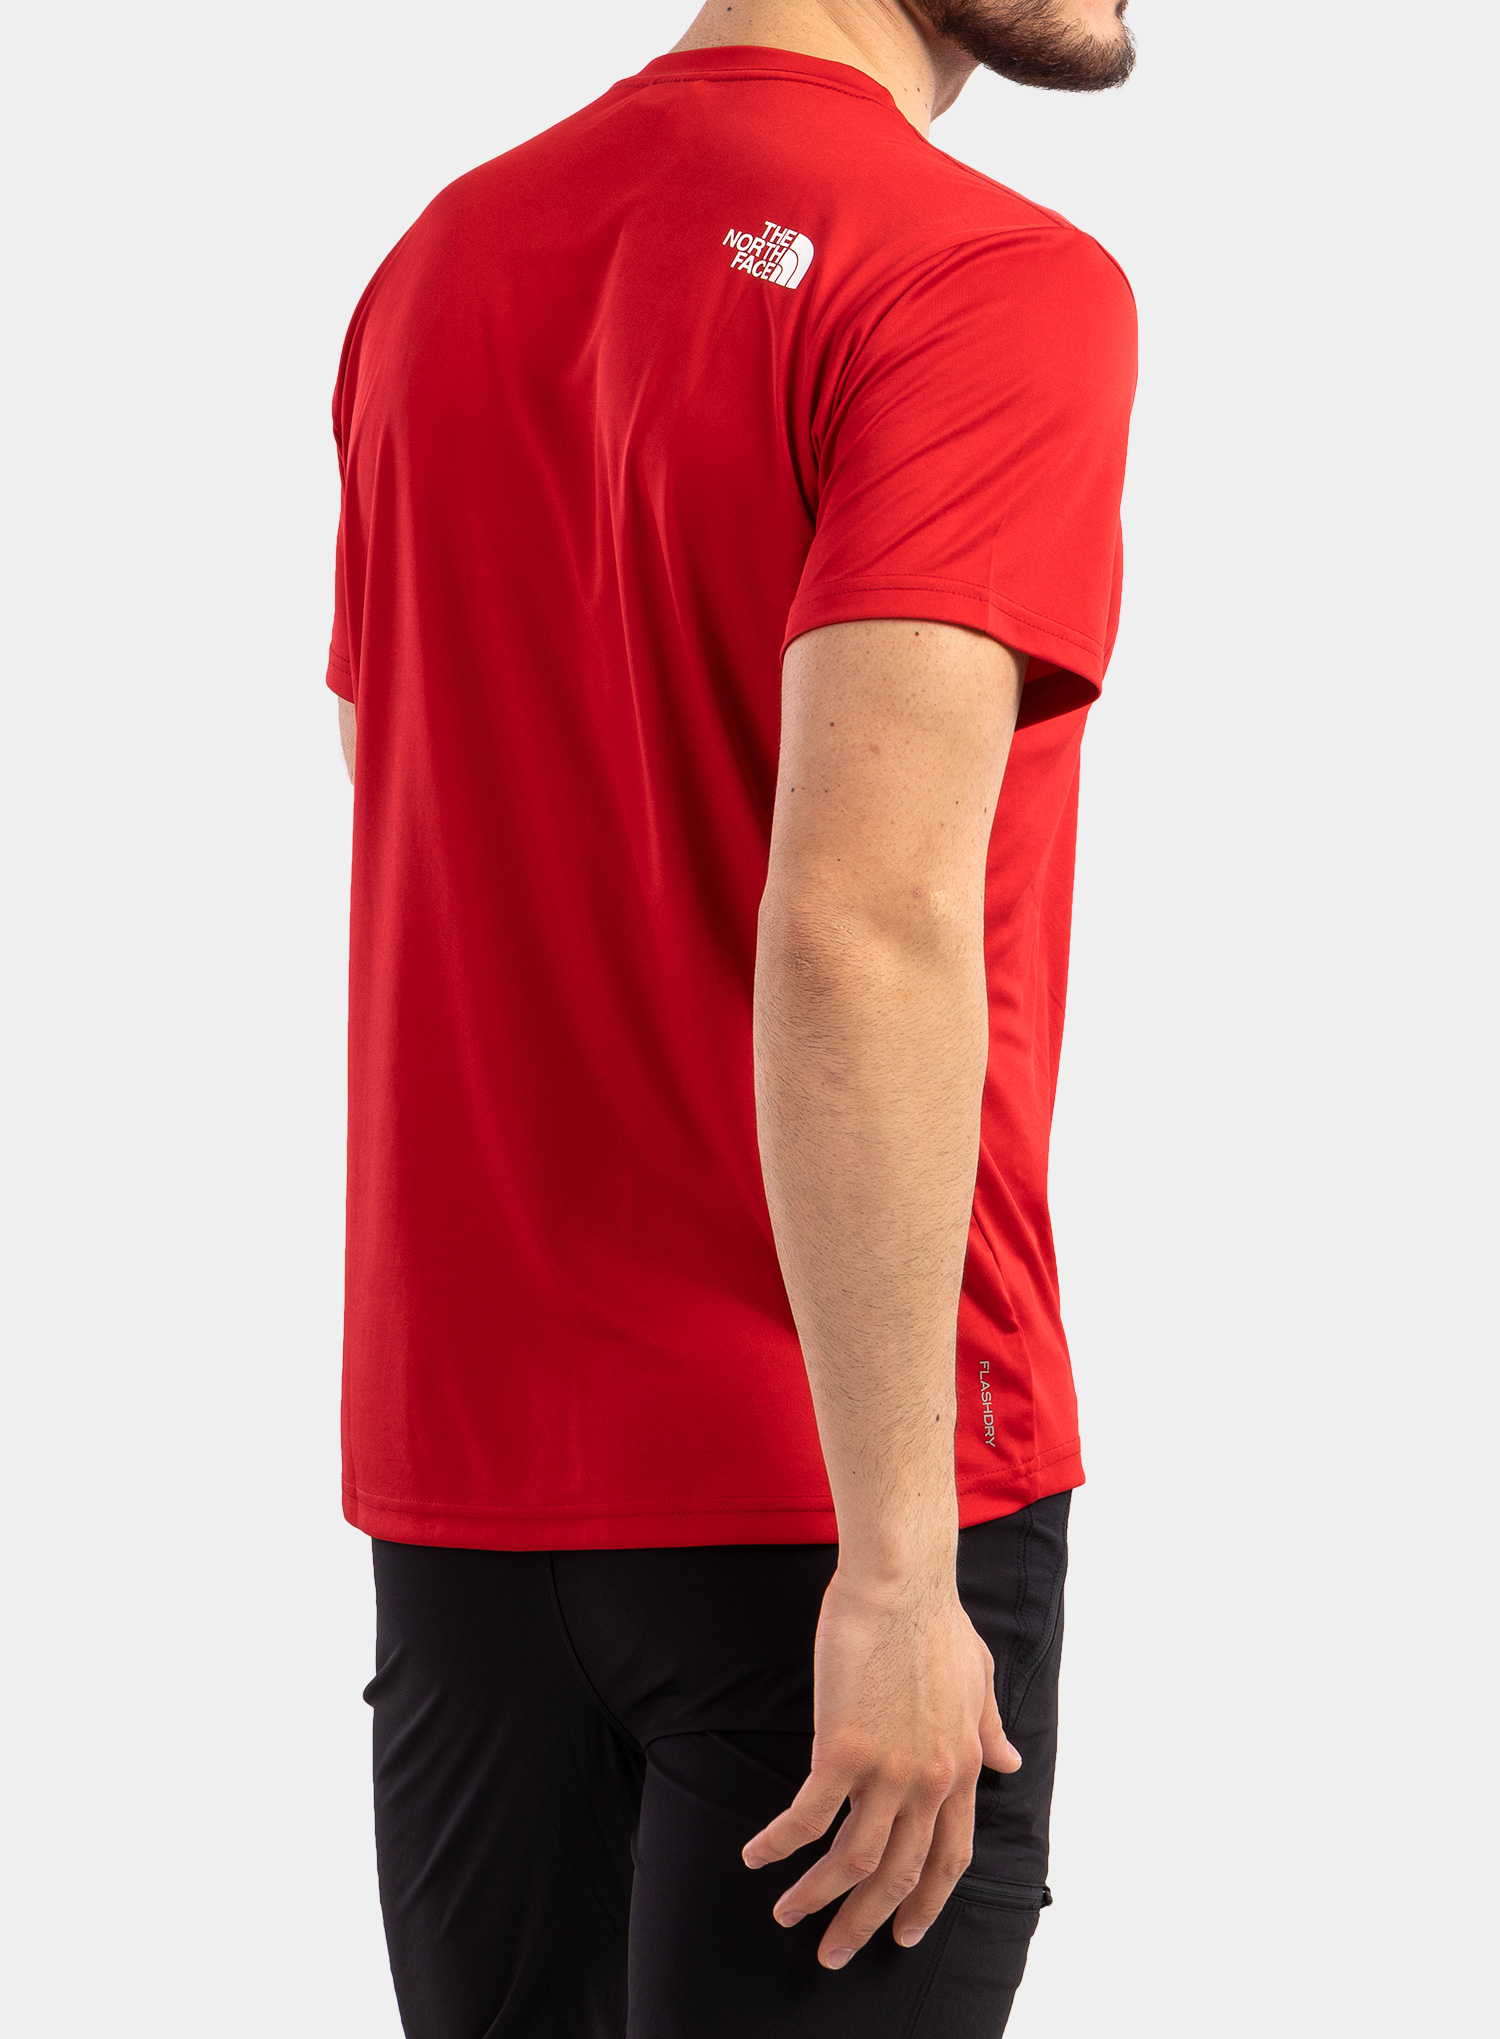 Koszulka The North Face Reaxion Easy Tee - tnf red - zdjęcie nr. 4